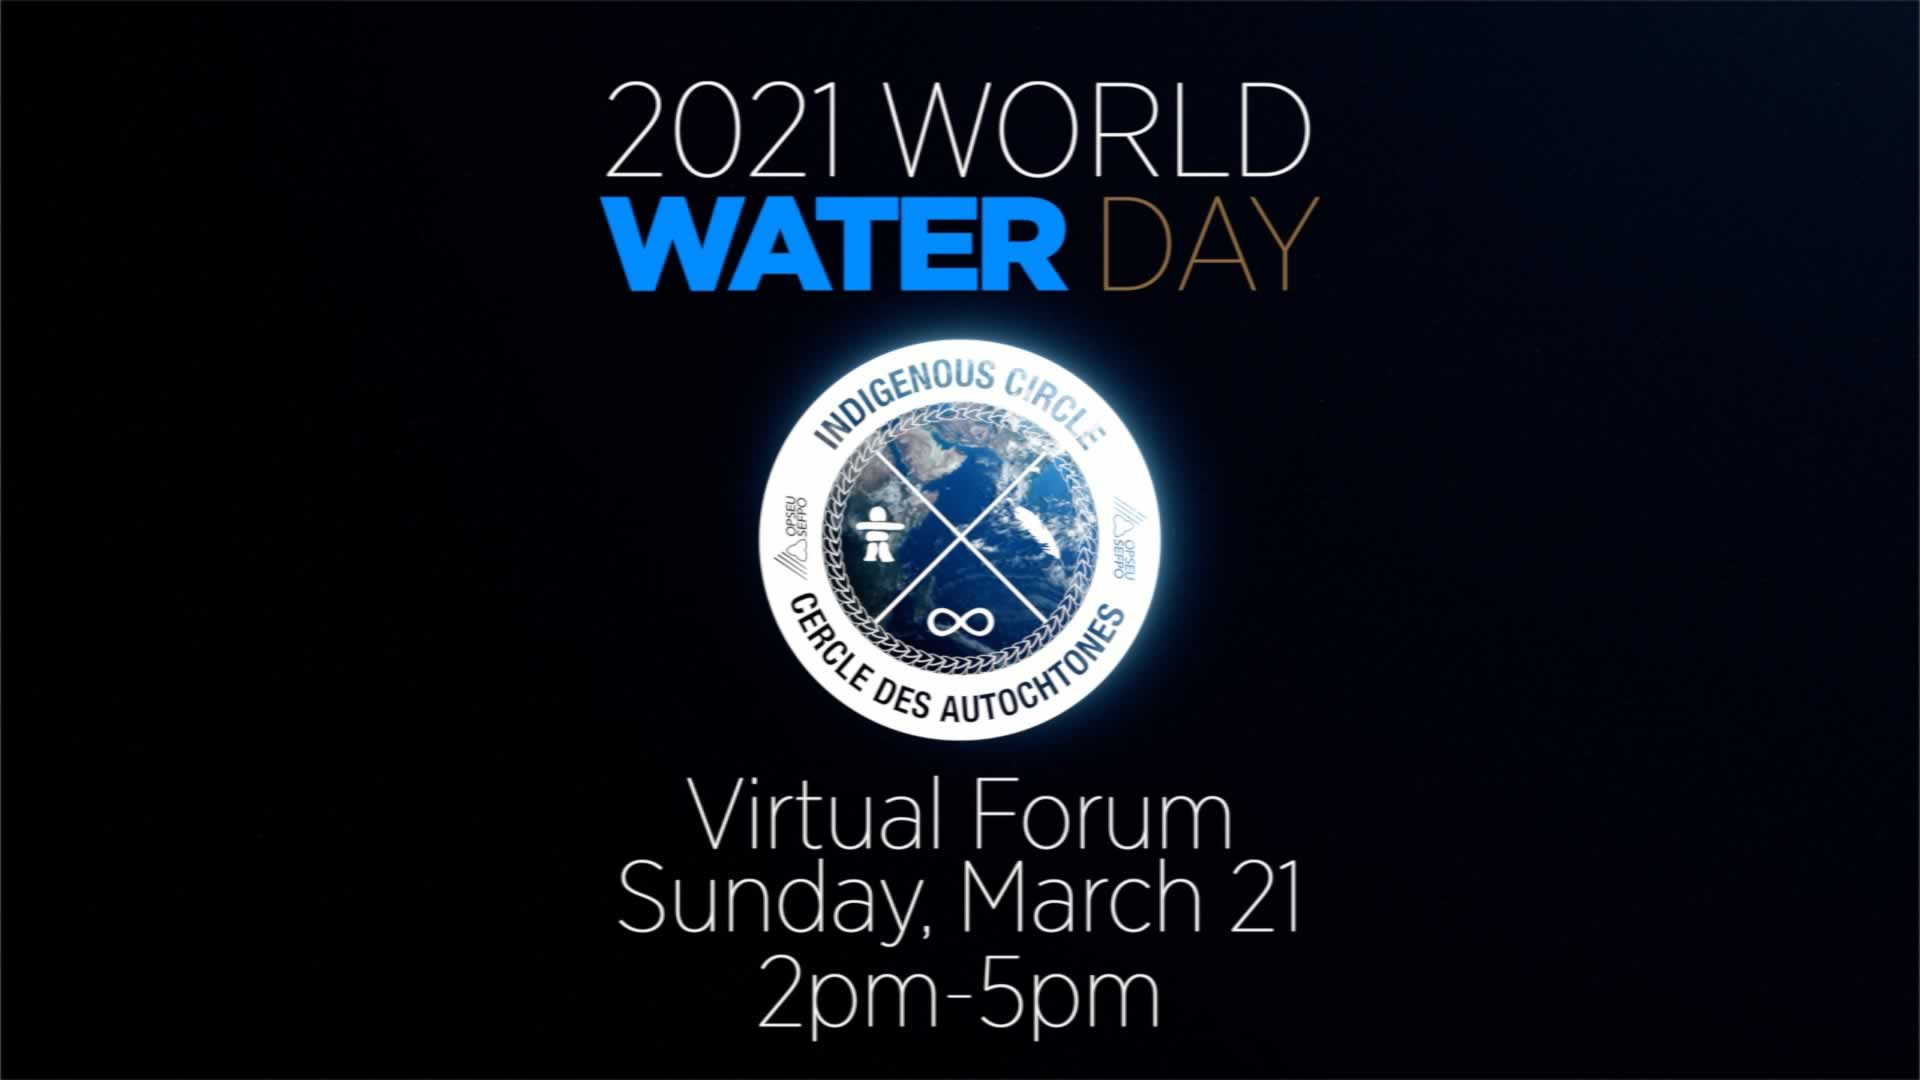 2021 International Water Day Promo, Indigenous Circle, March 21, 2pm-5pm